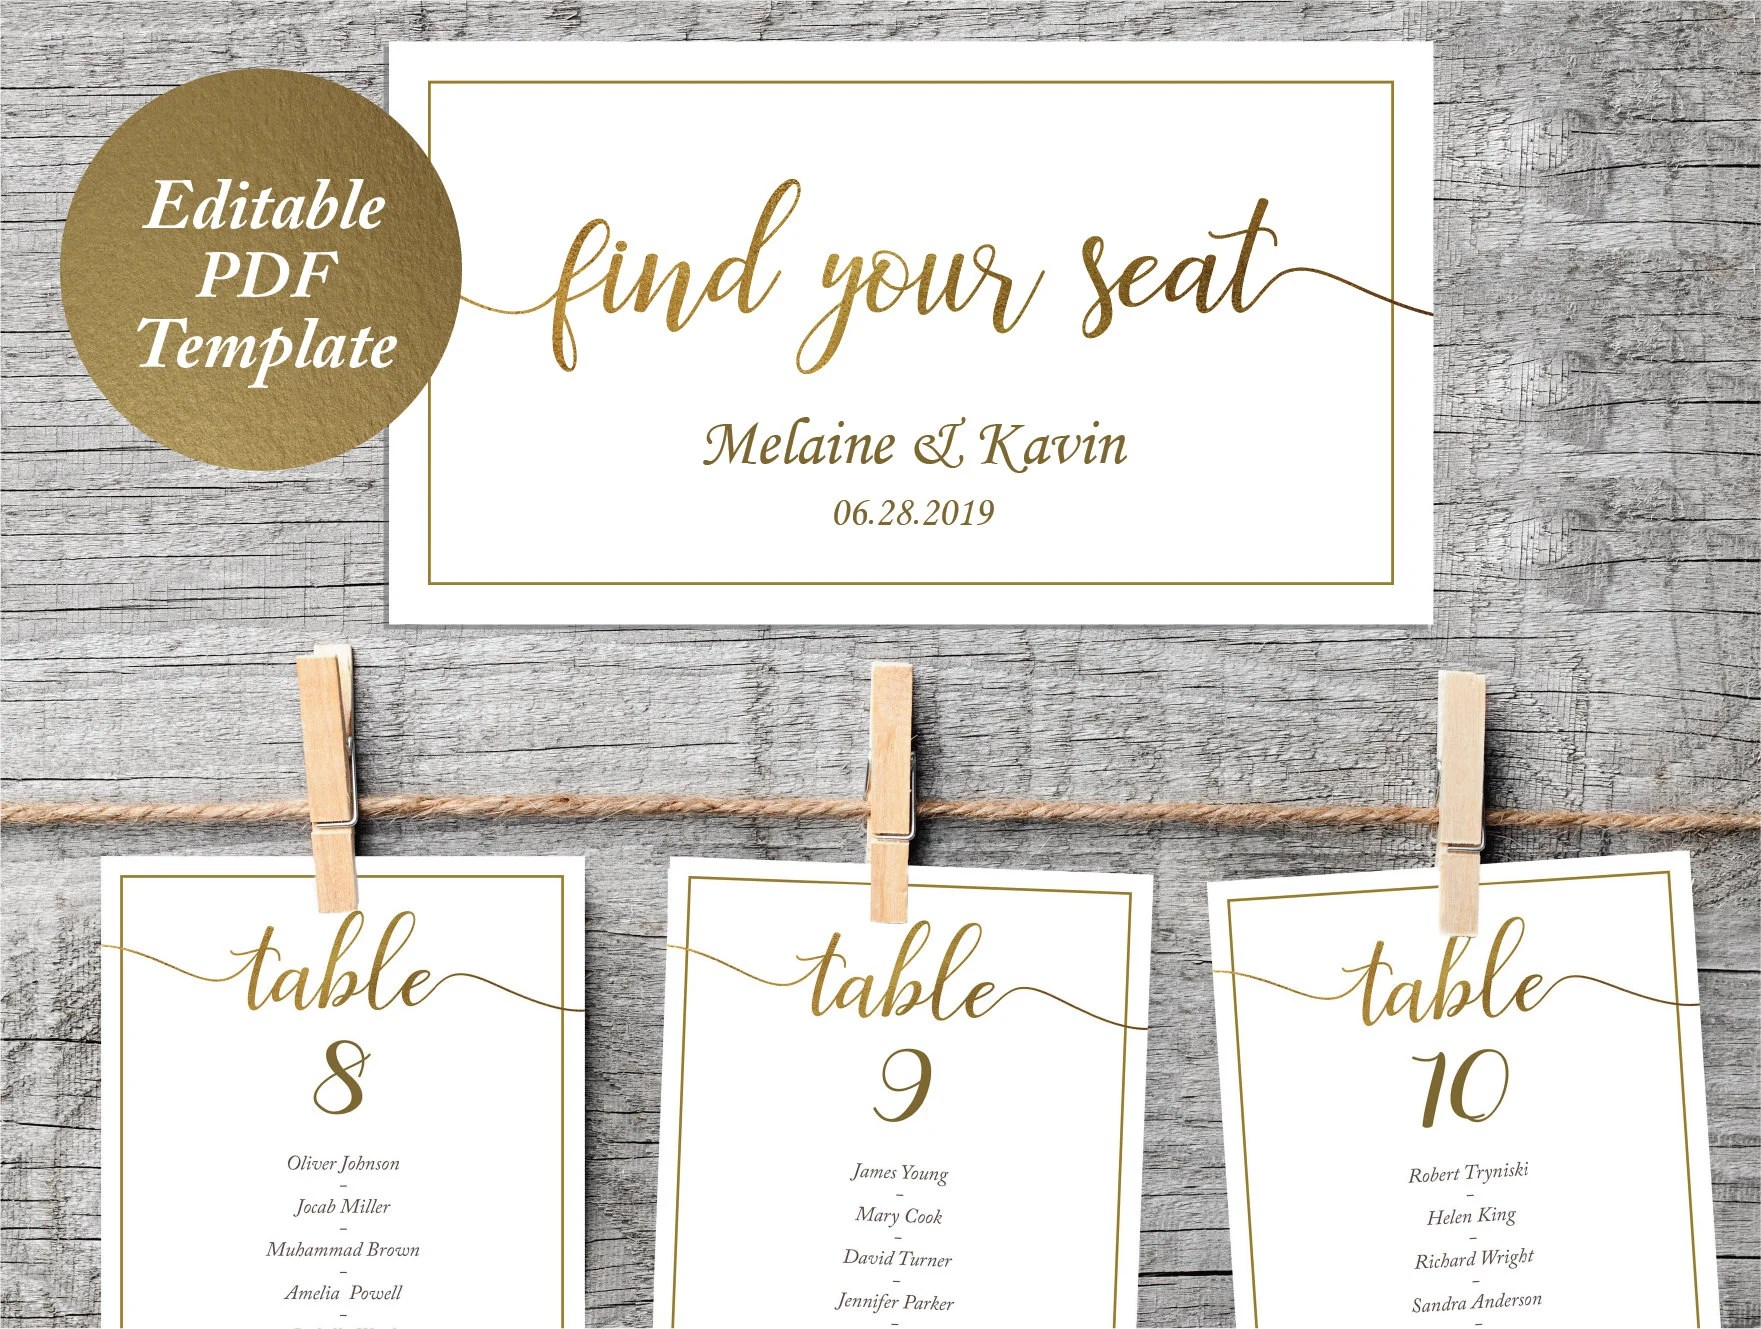 Foil gold wedding seating chart template set printable editable pdf templates table plan  event sign custom diy also etsy rh